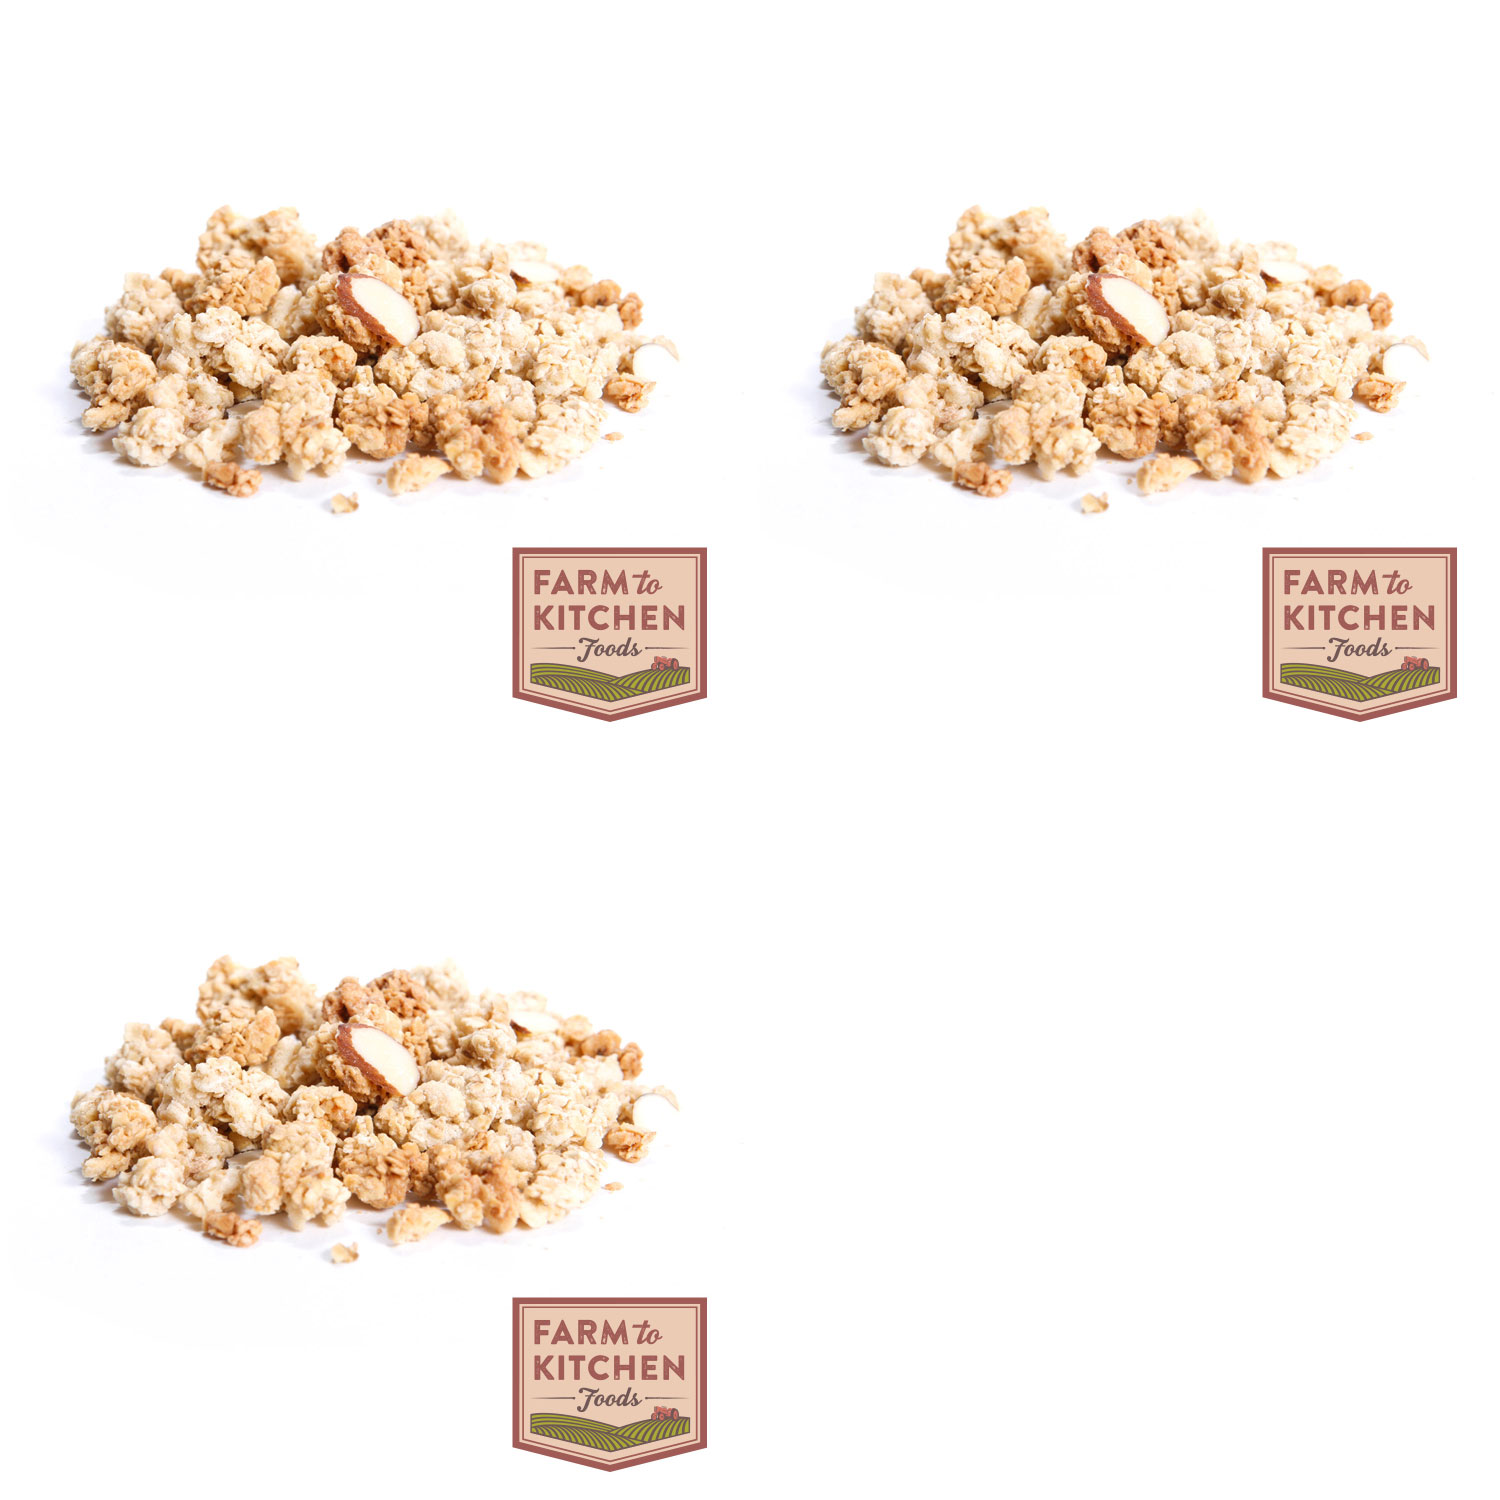 Farm to Kitchen Foods French Vanilla Almond Granola - Buy 2 Get 1 Free